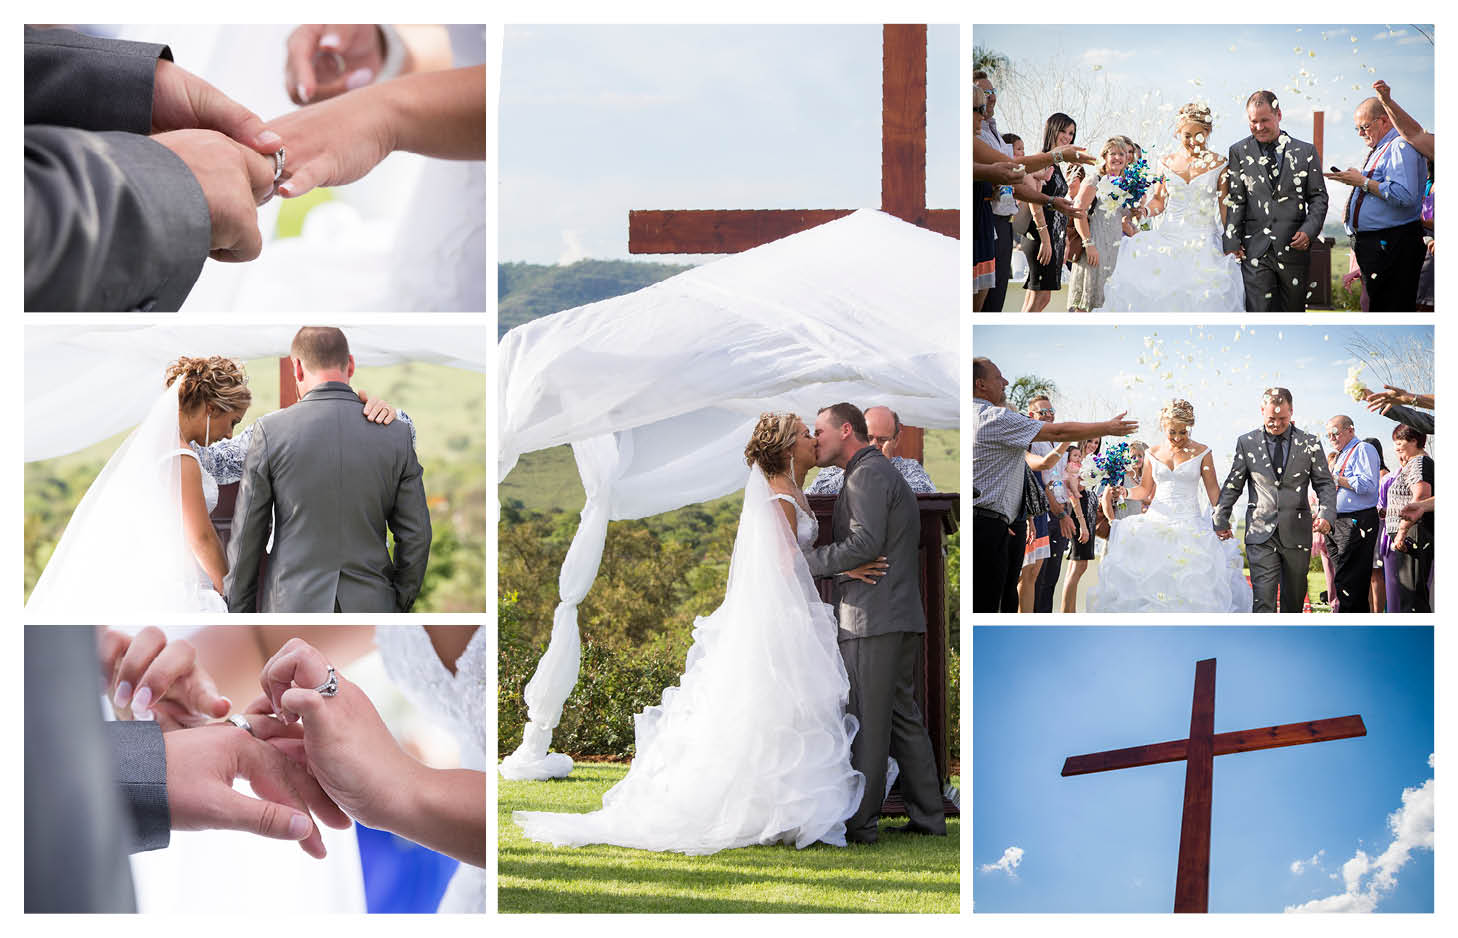 exchanging of rings and wedding ceremony traditions at La WiiDA Lodge